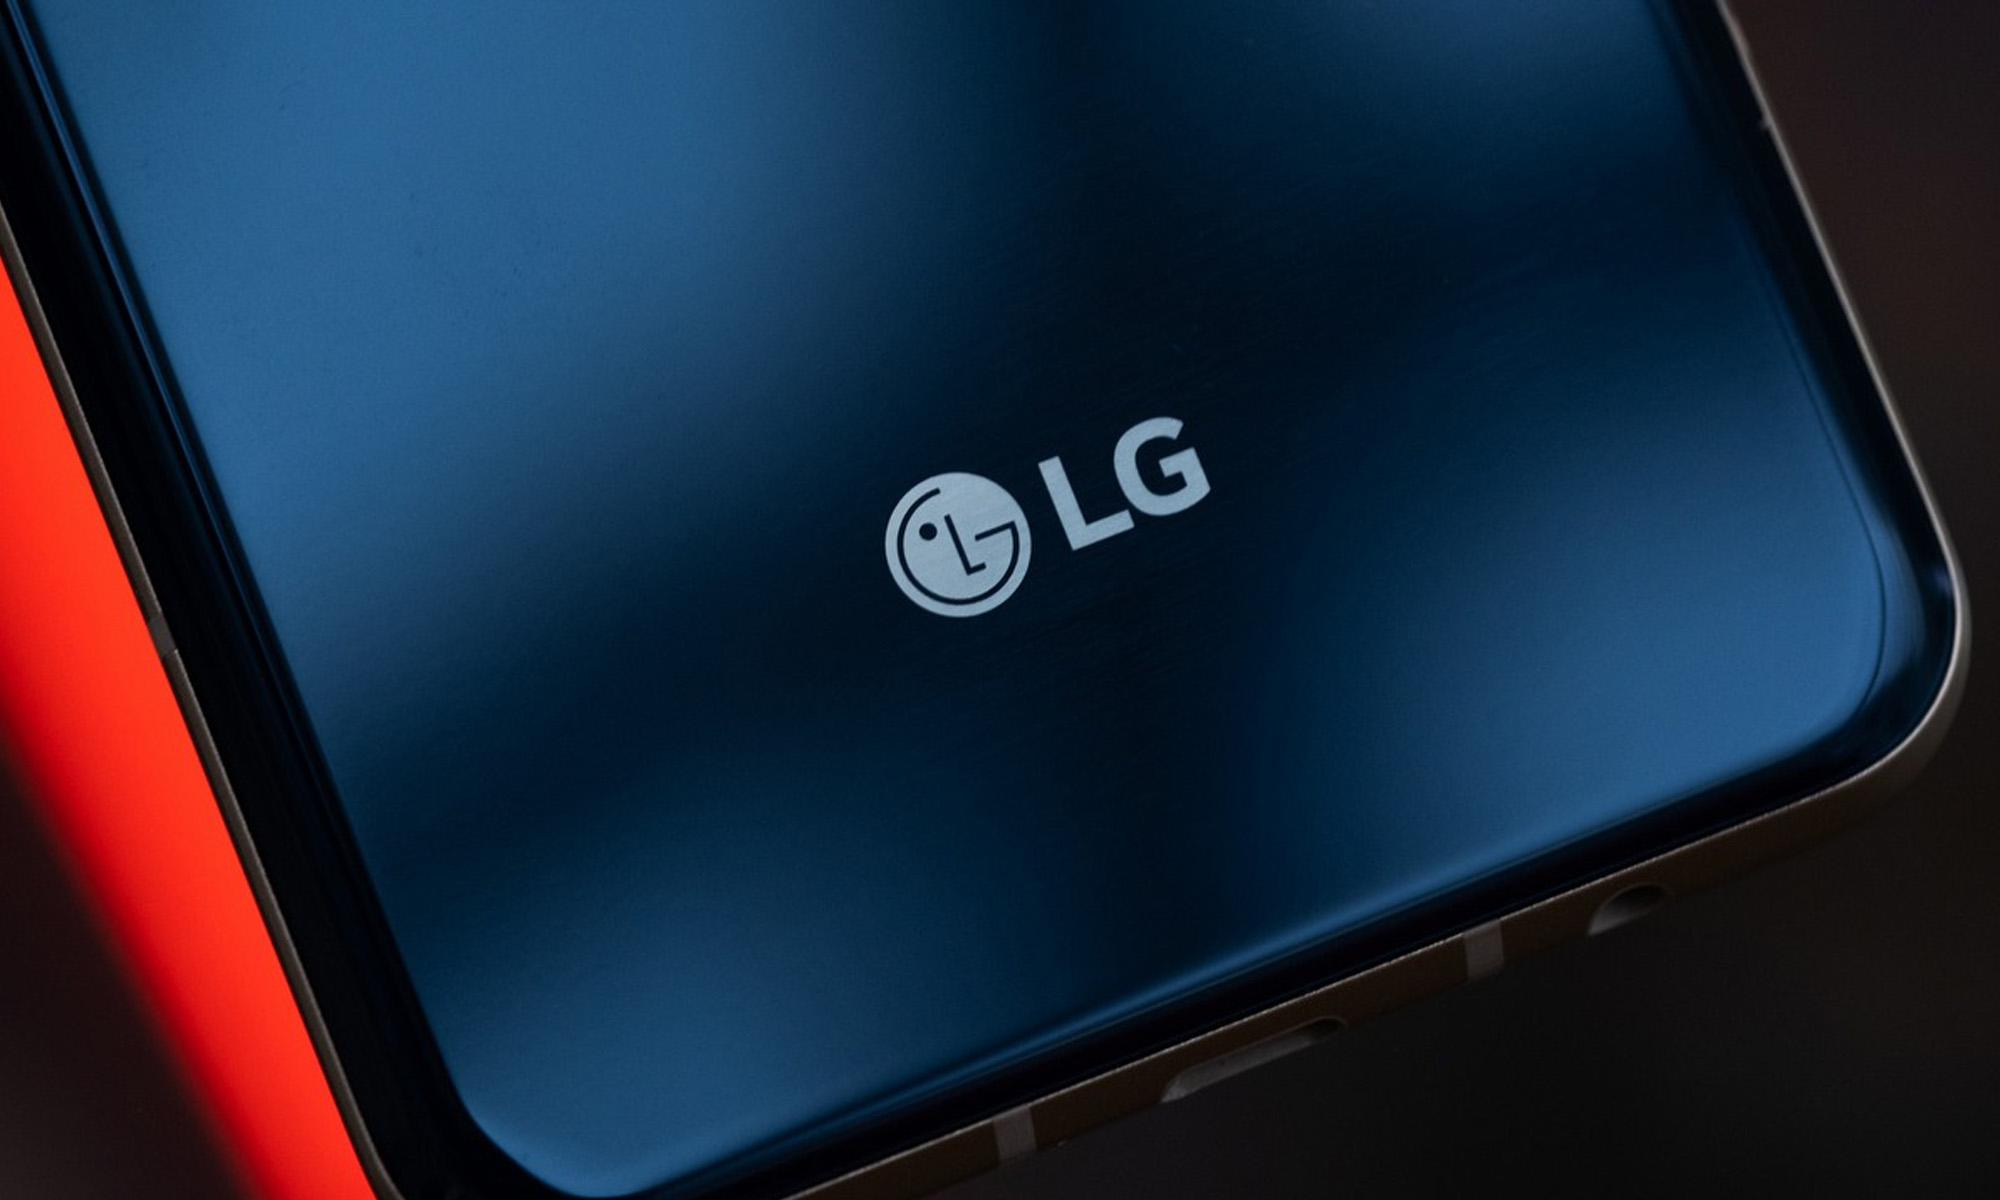 lg to withdraw from smartphone market due to ongoing losses